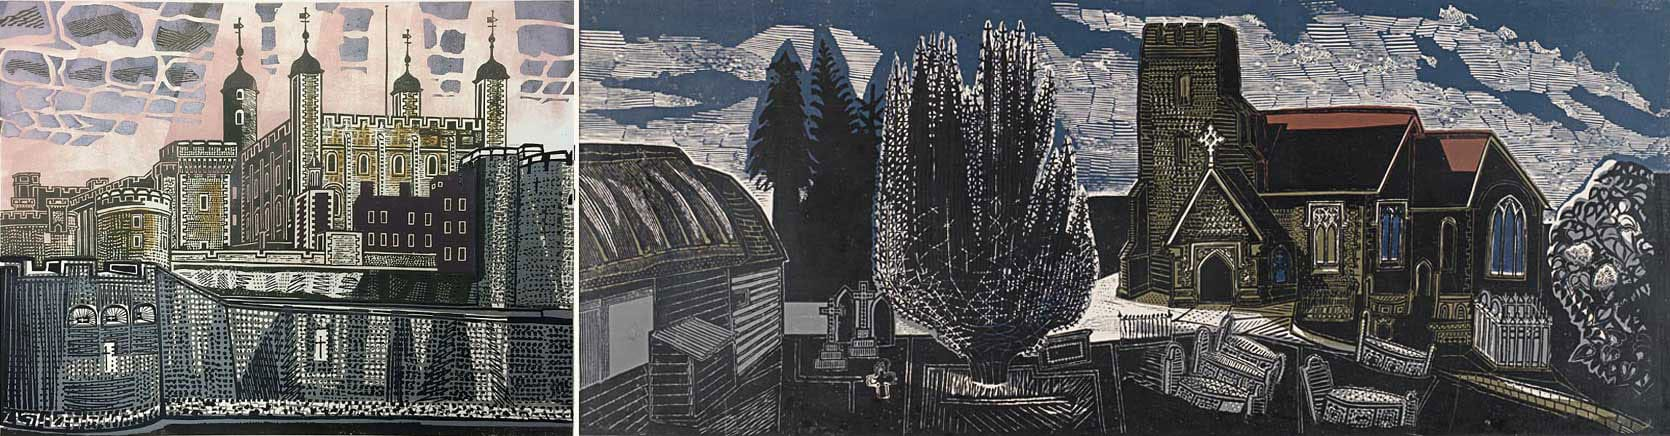 Two prints by Edward Bawden